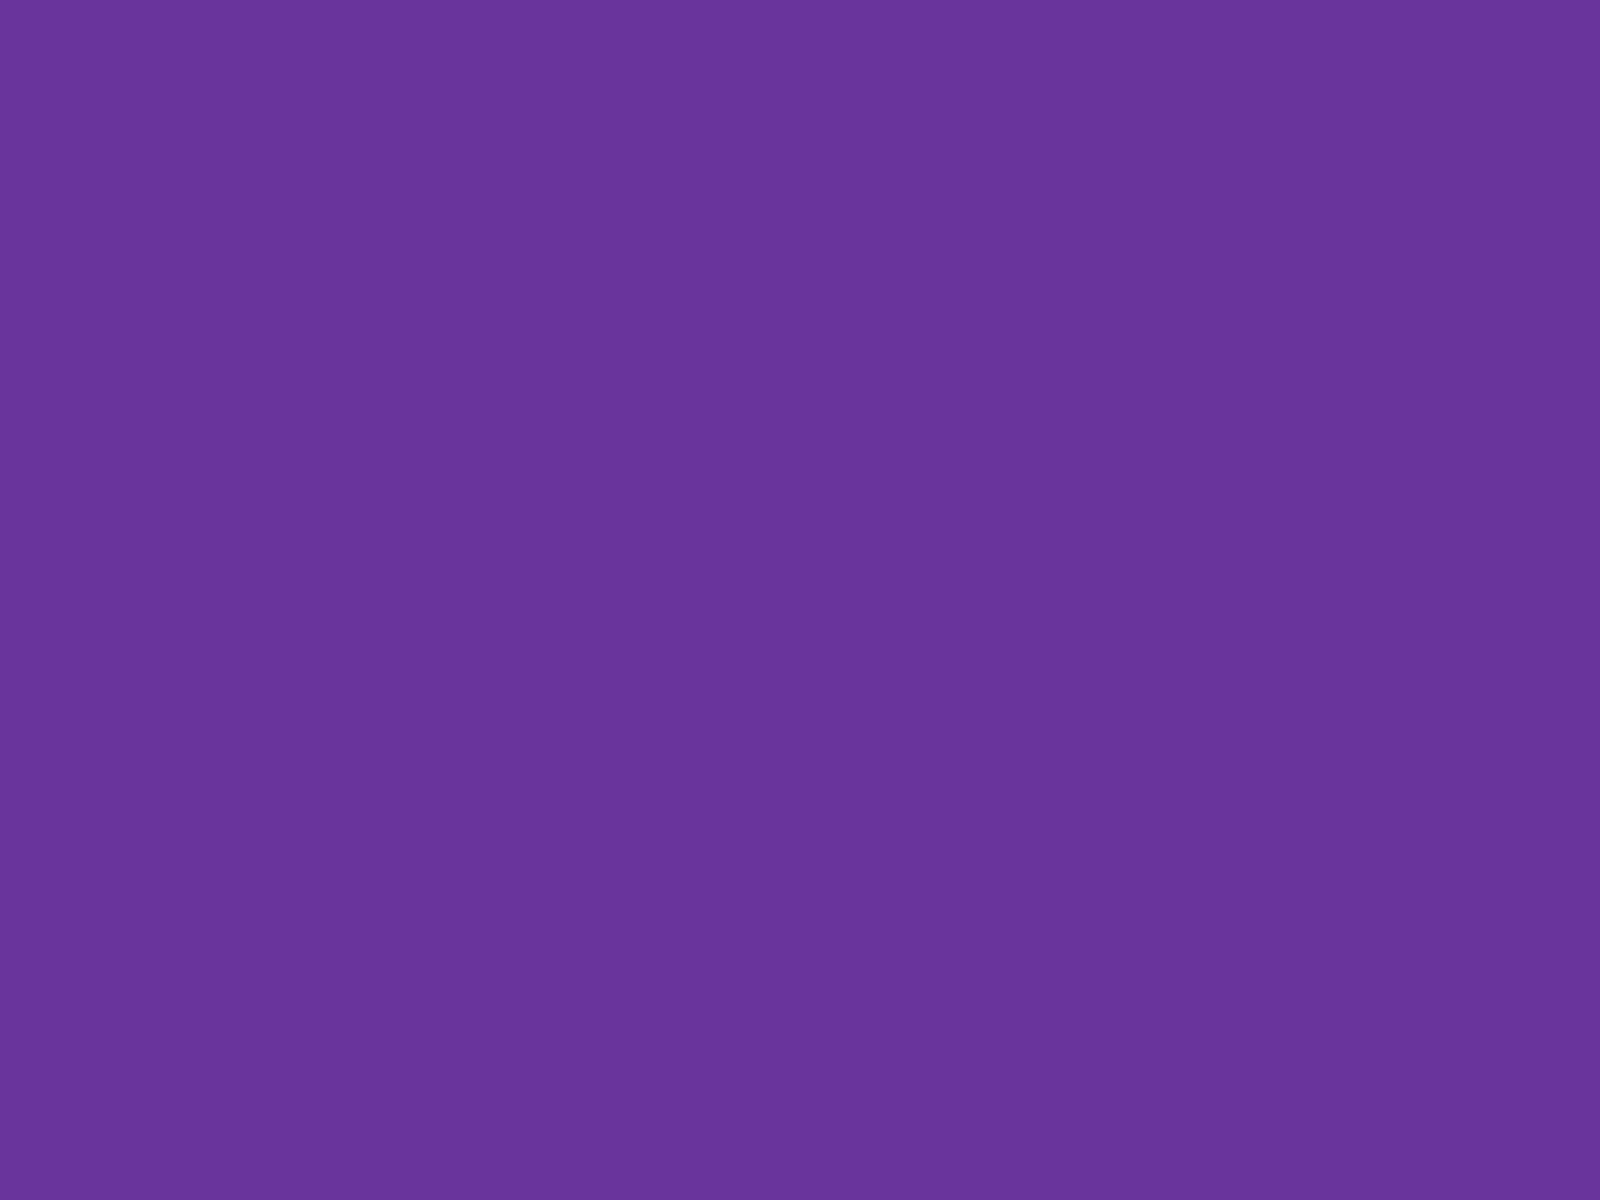 1600x1200 Purple Heart Solid Color Background